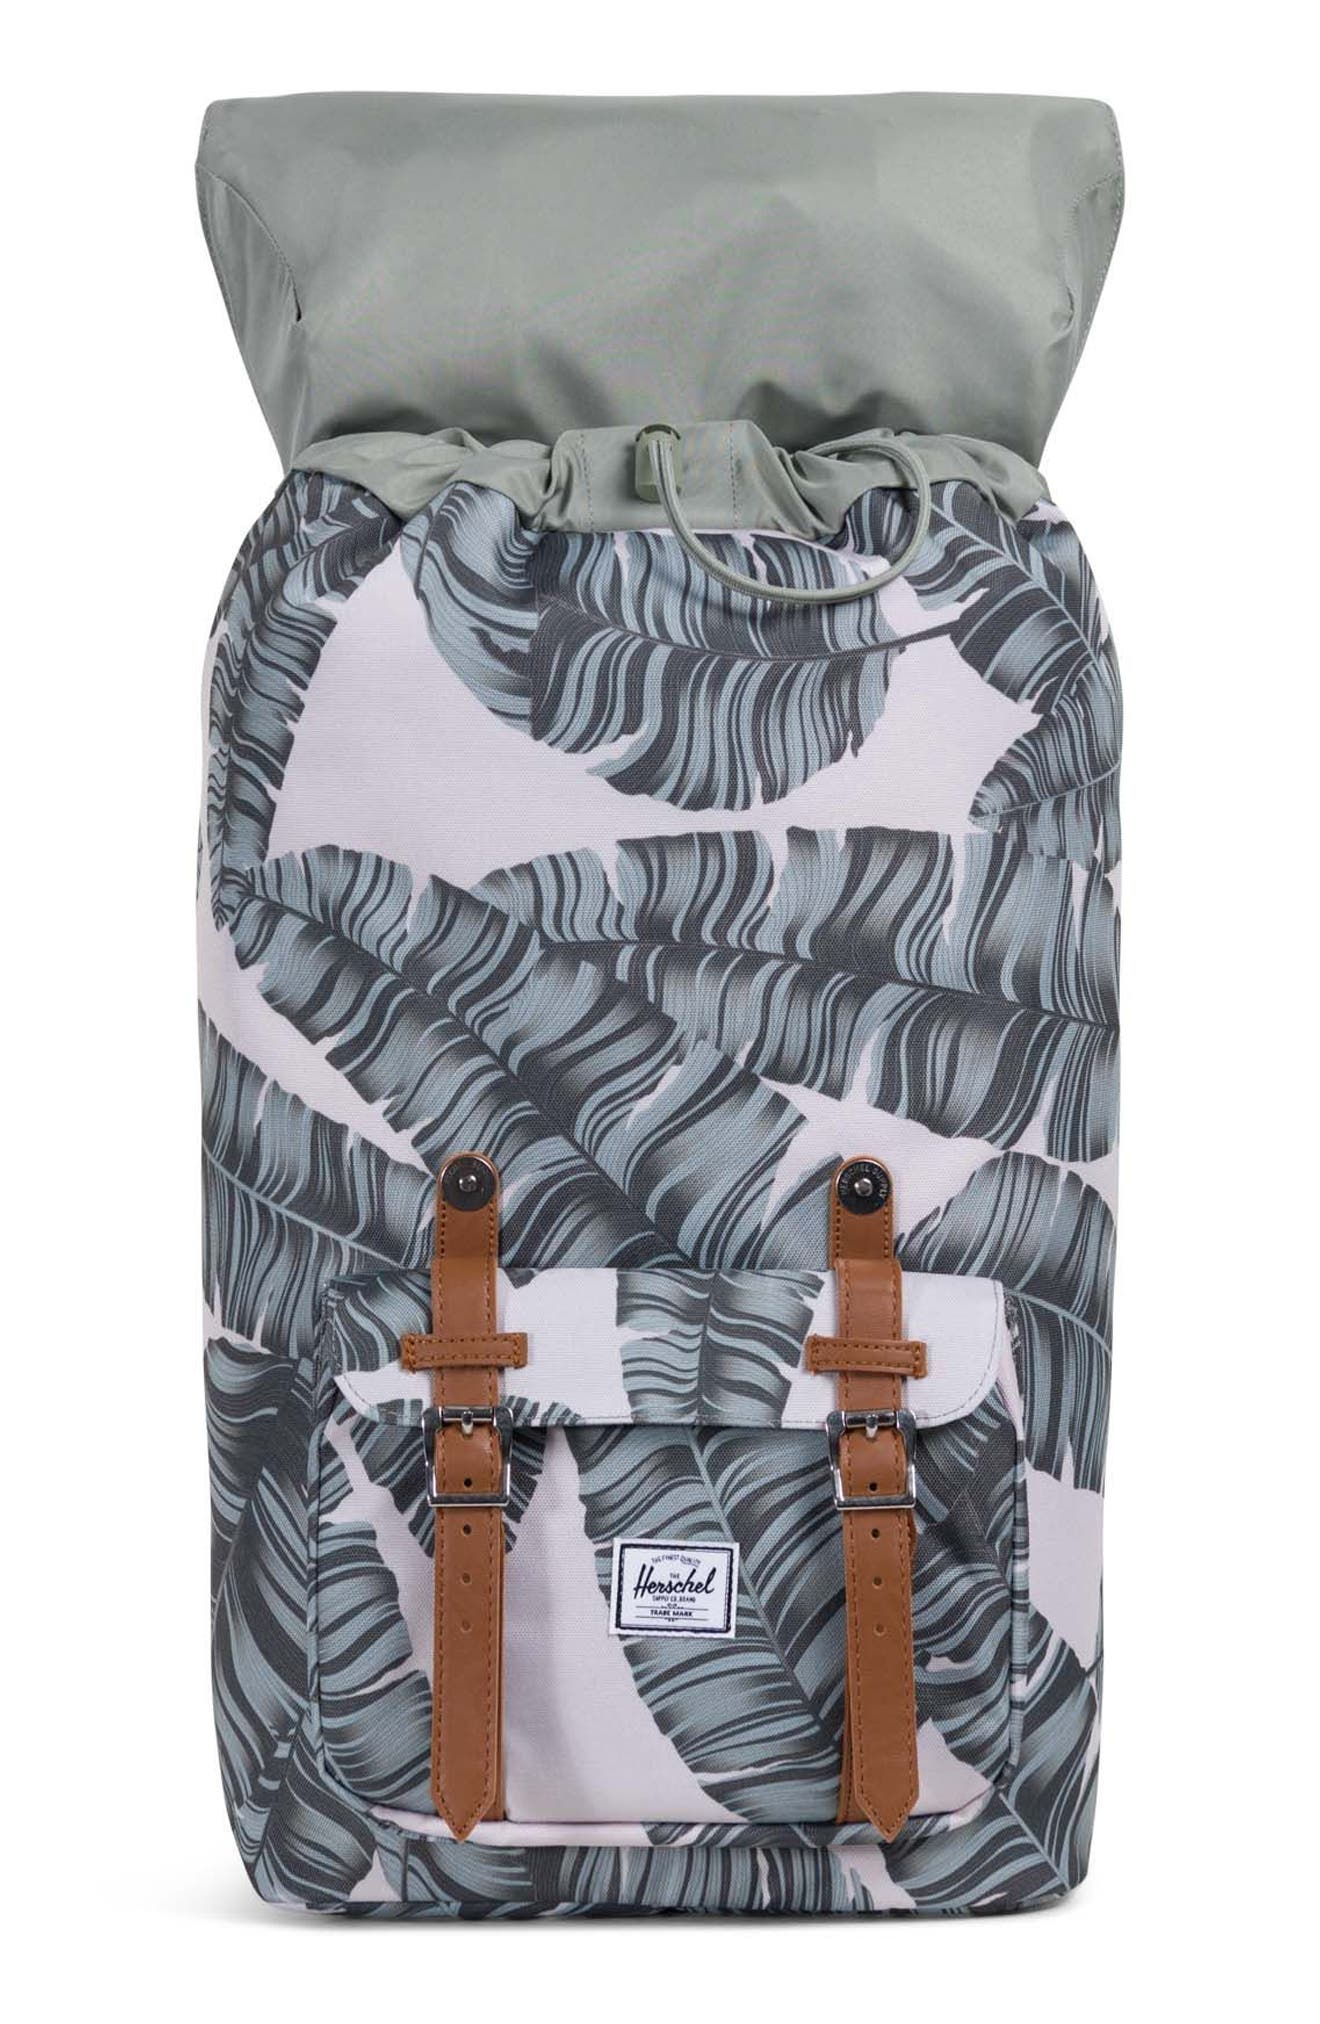 'Little America' Backpack,                             Alternate thumbnail 3, color,                             Silver Birch Palm/ Tan